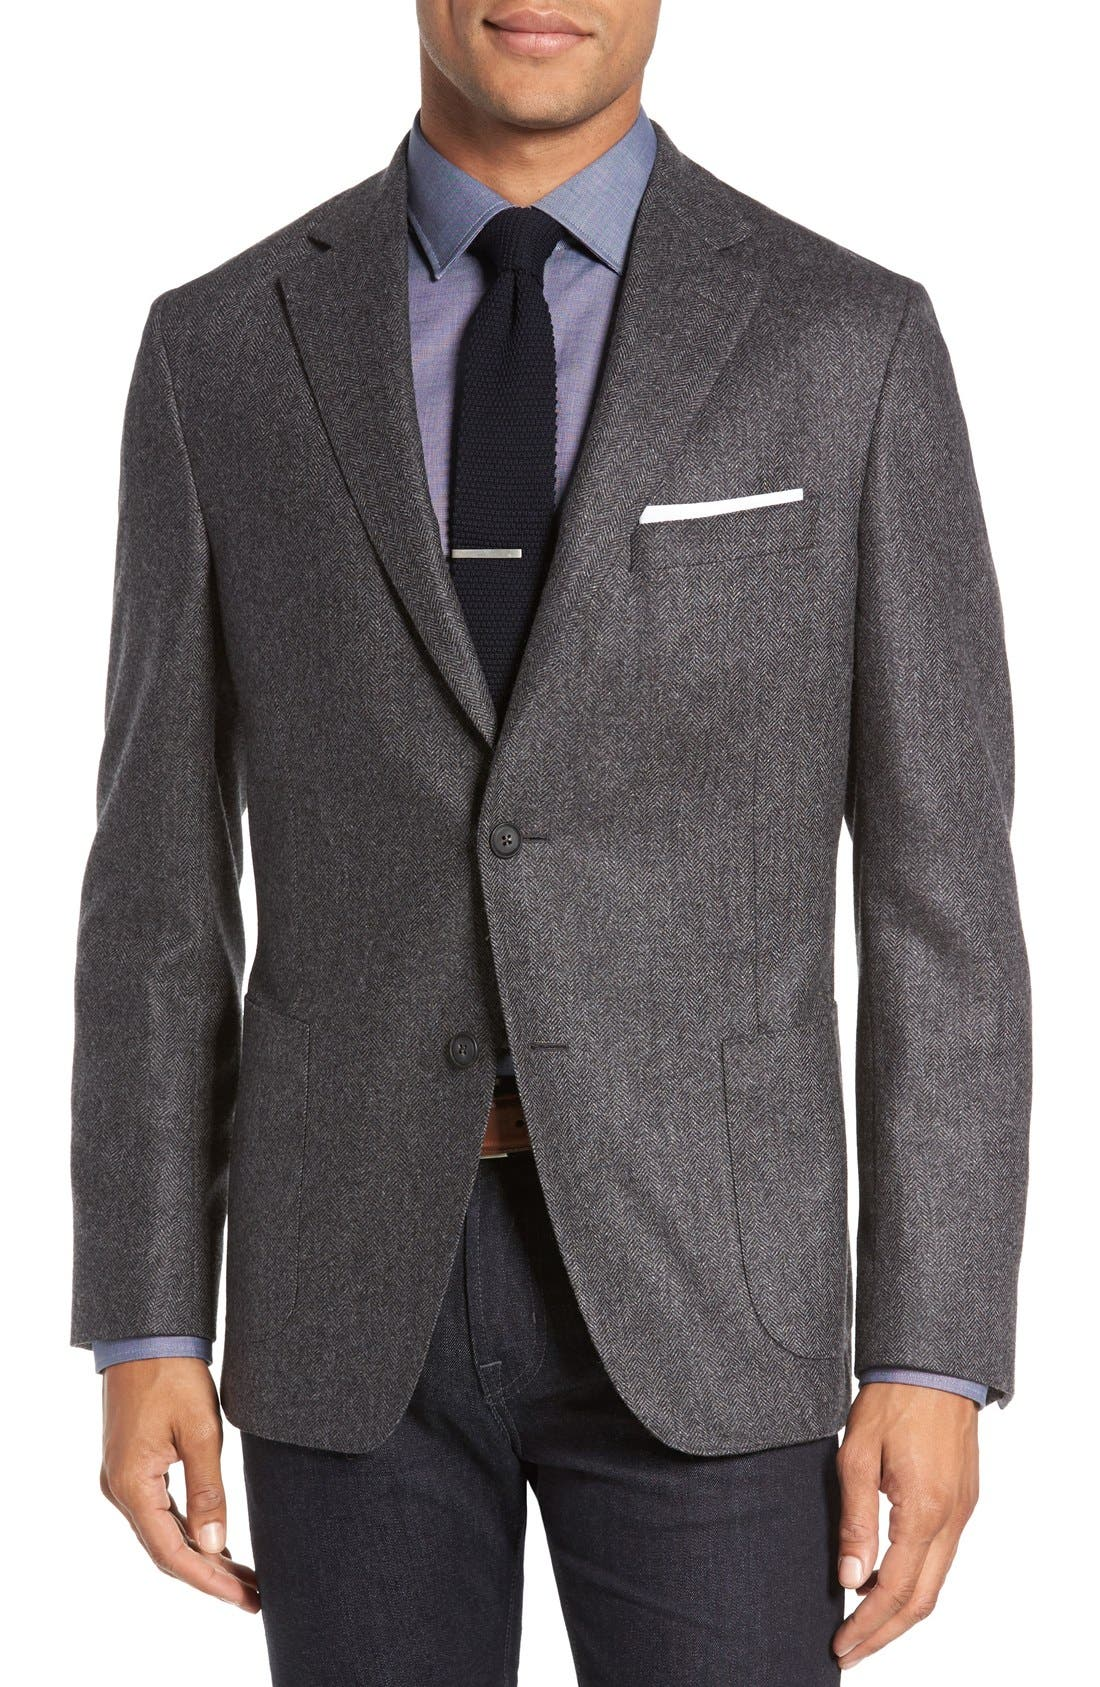 Beckett Classic Fit Herringbone Cashmere Sport Coat,                             Main thumbnail 1, color,                             Charcoal